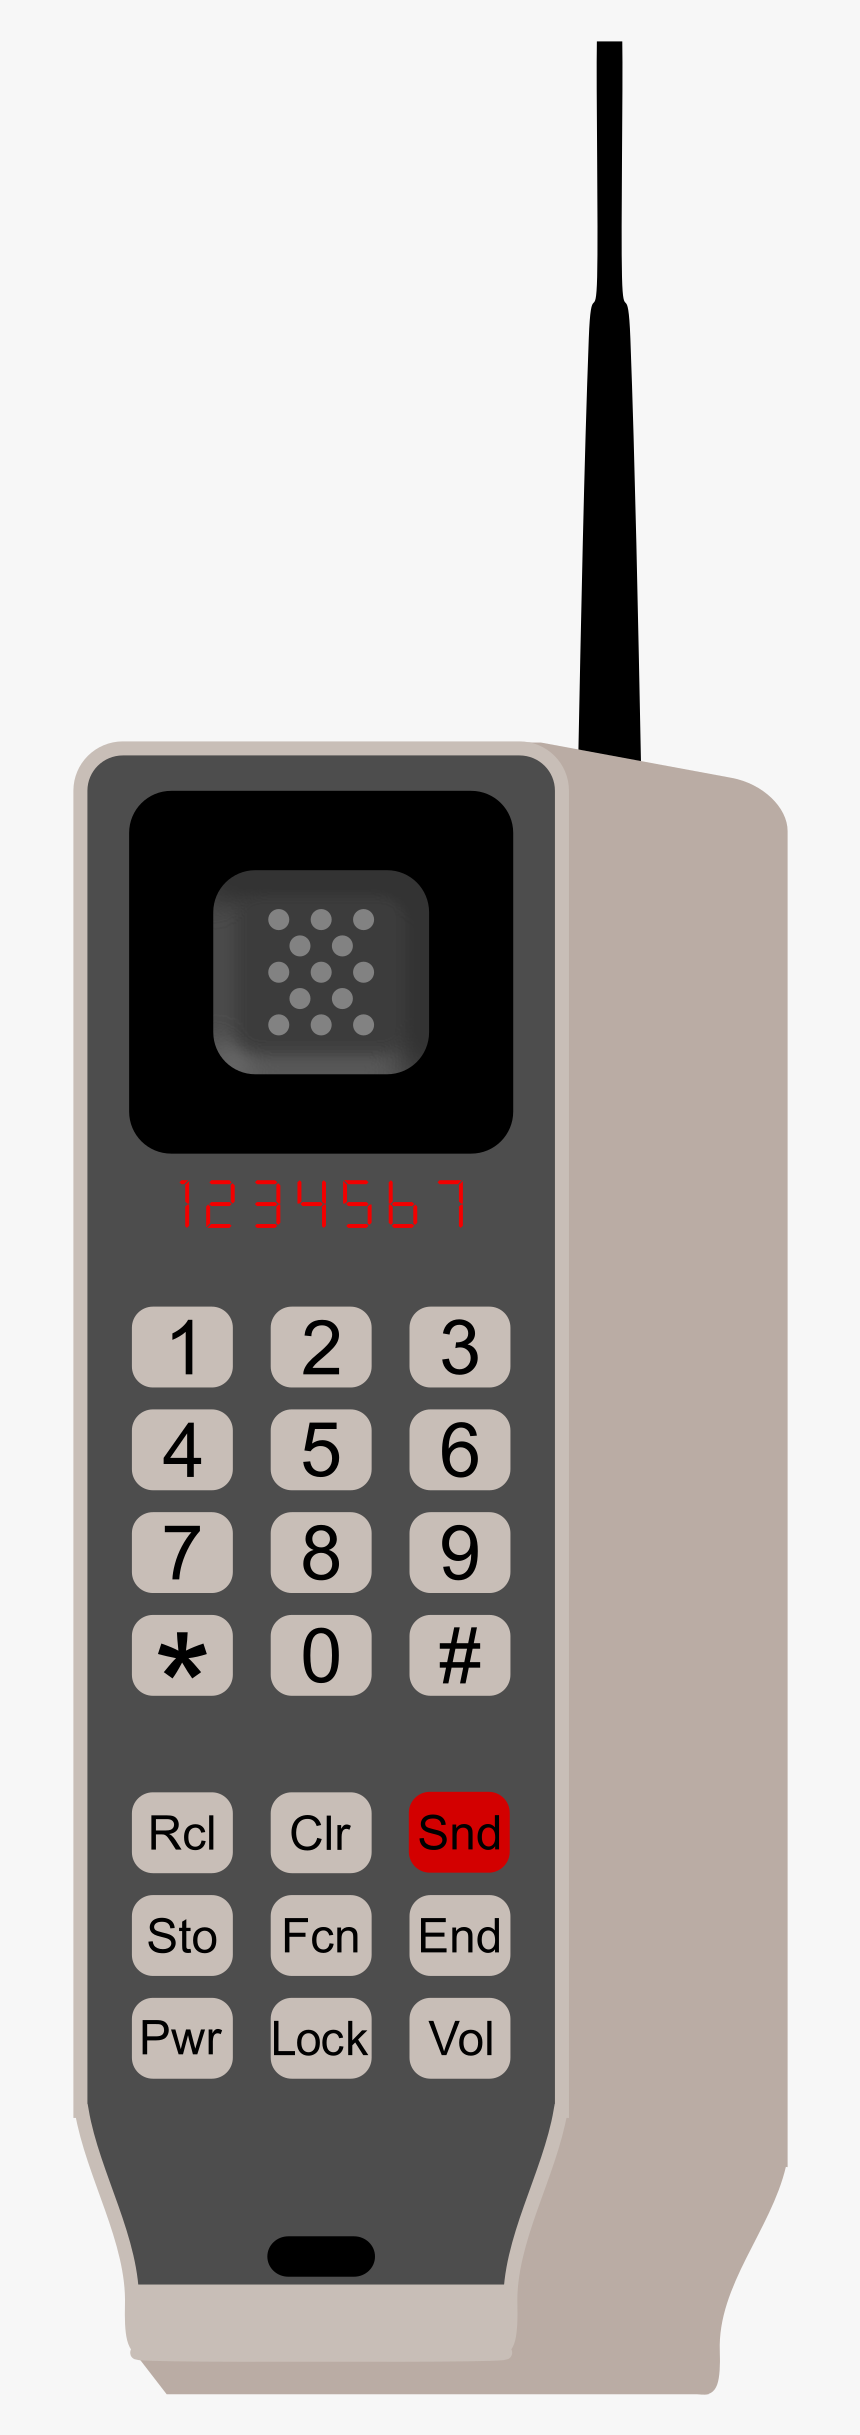 Brick Phone Clip Arts - First Mobile Phone Clipart, HD Png Download, Free Download